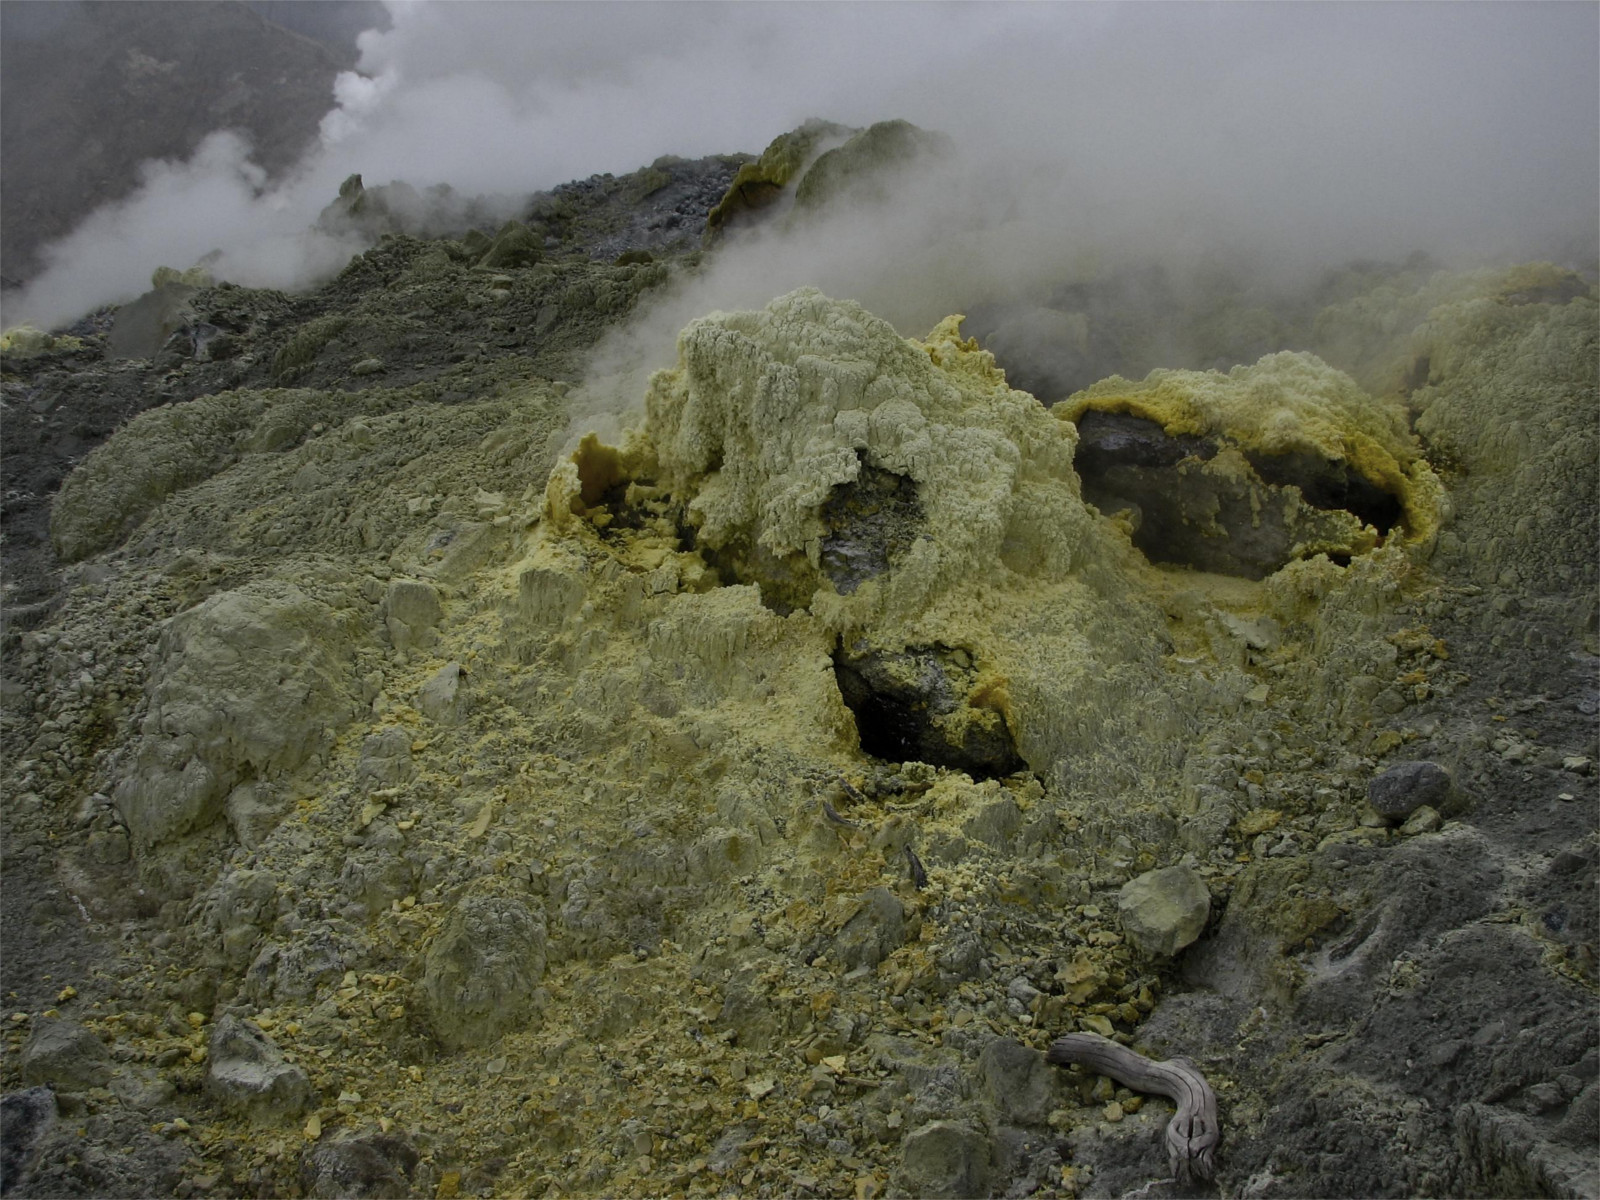 Sulfur Caused Early Life to Sprout